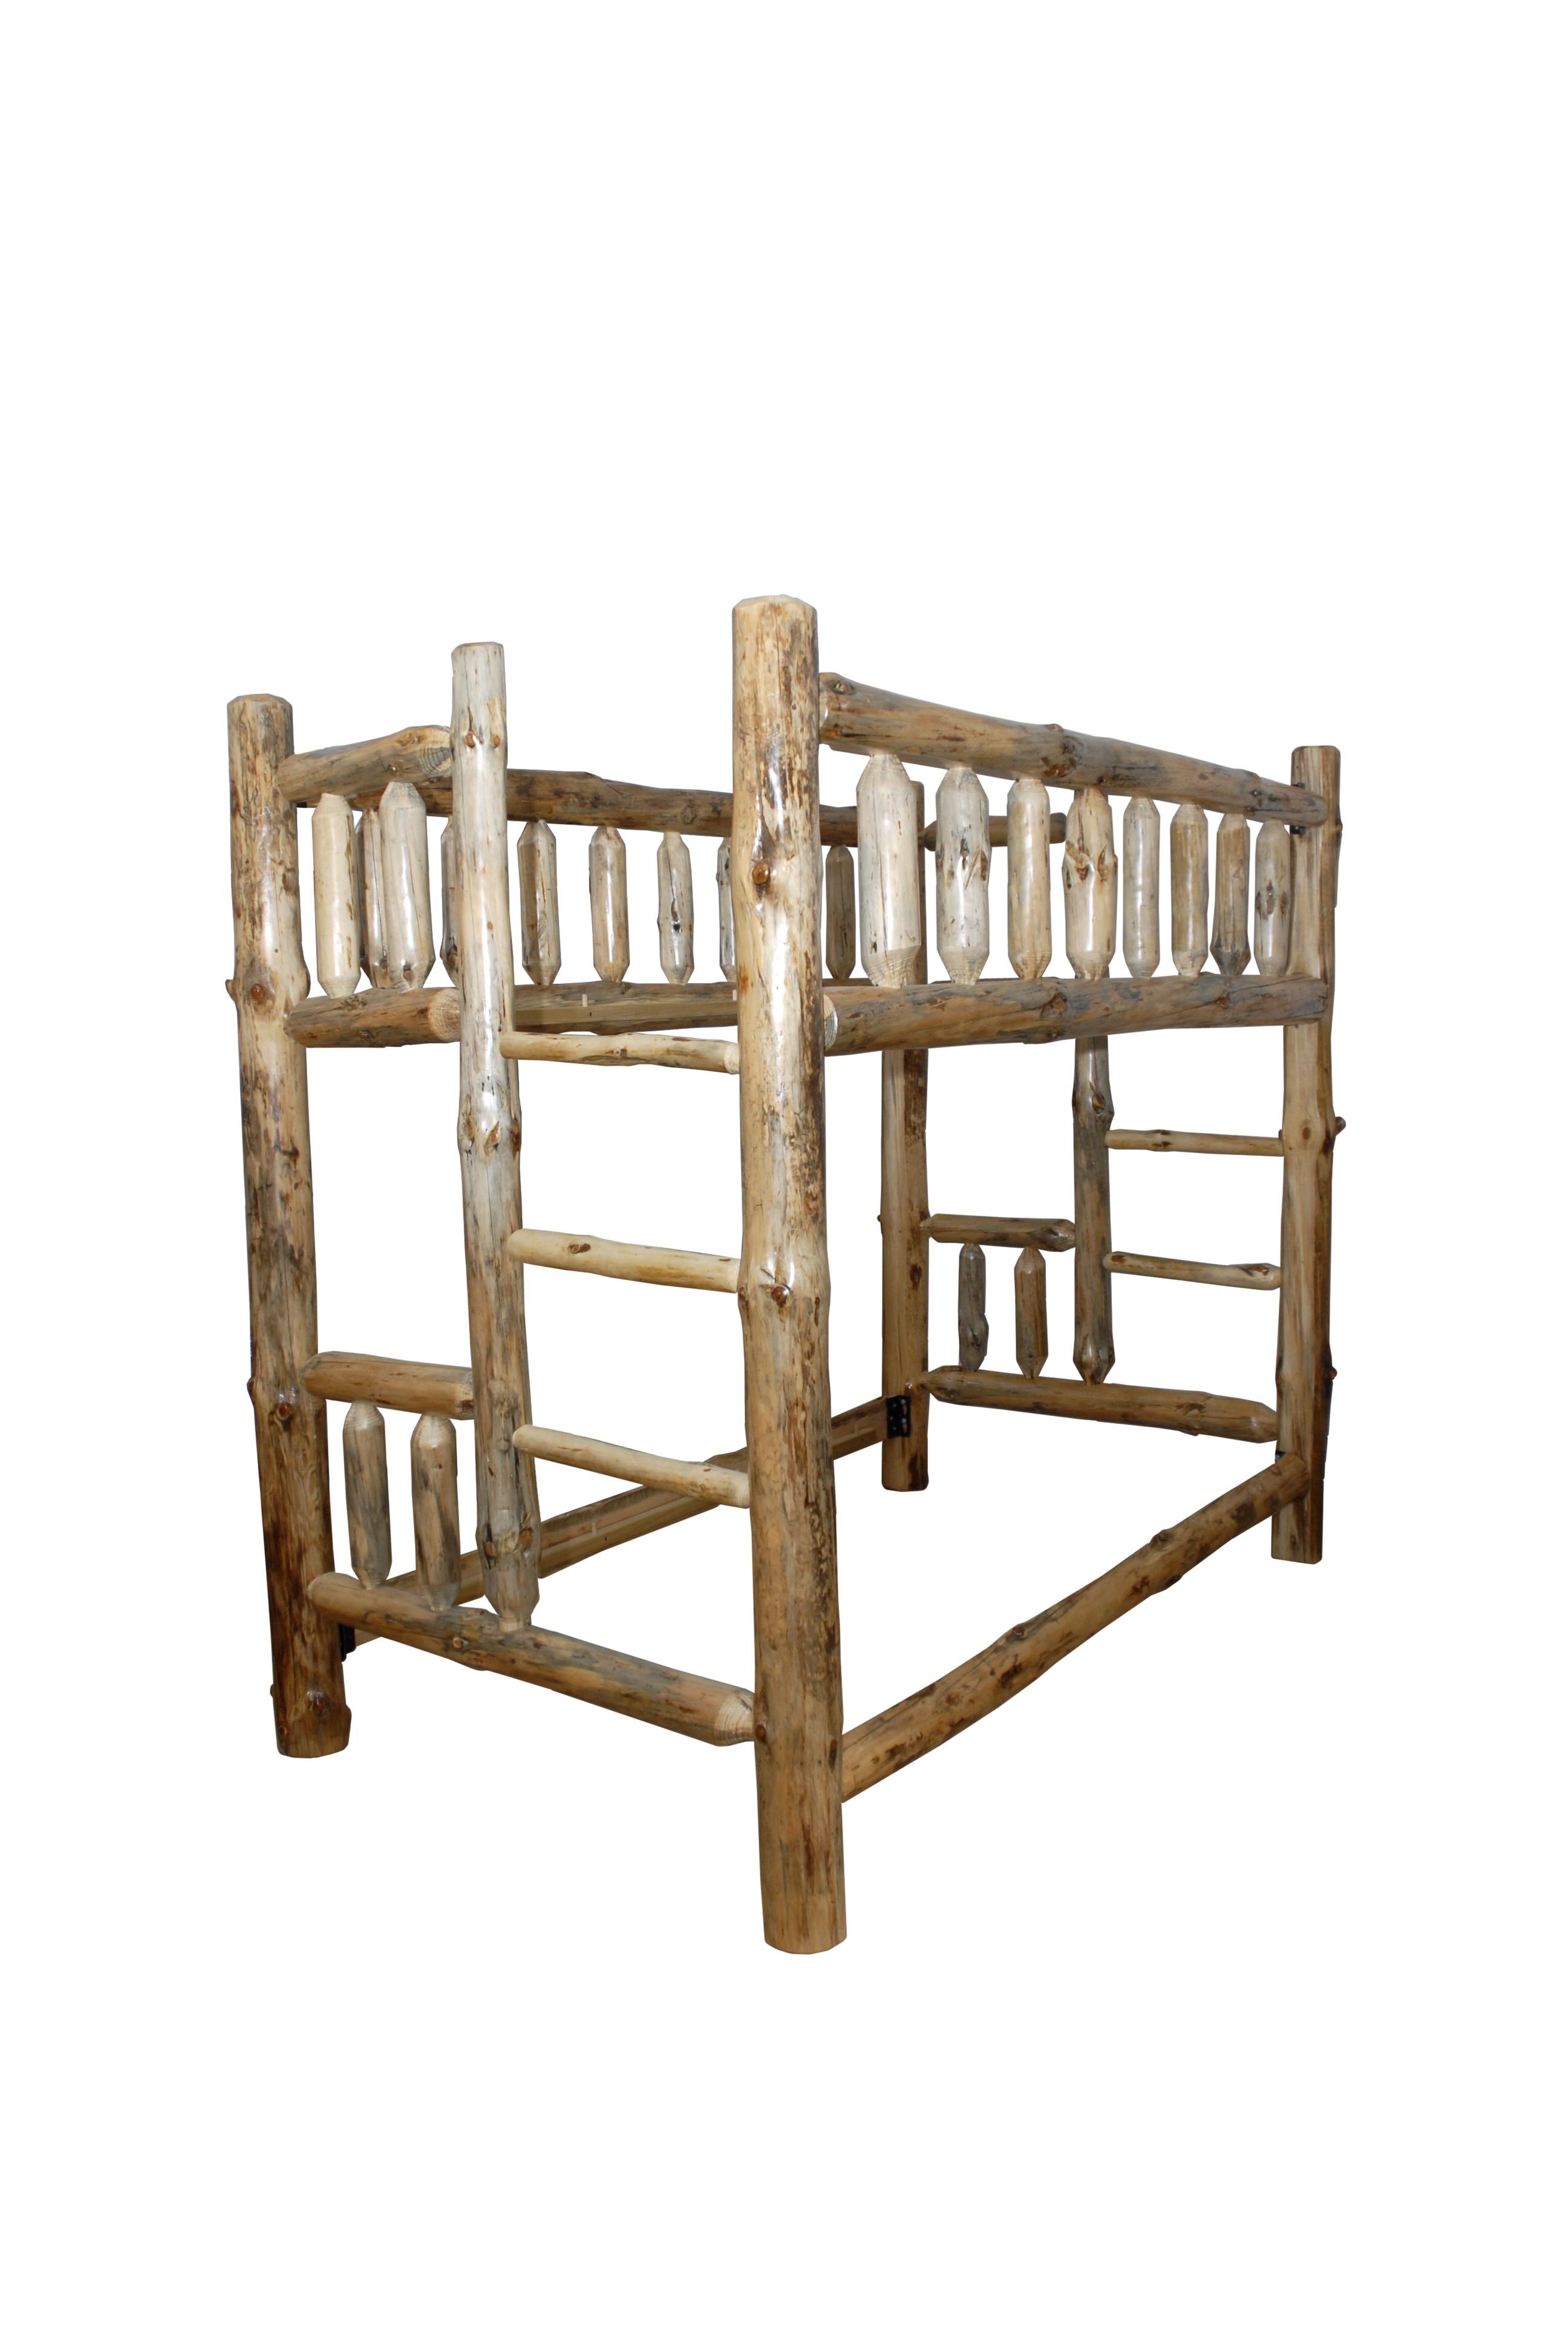 Rustic Pine Log Bunk Bed